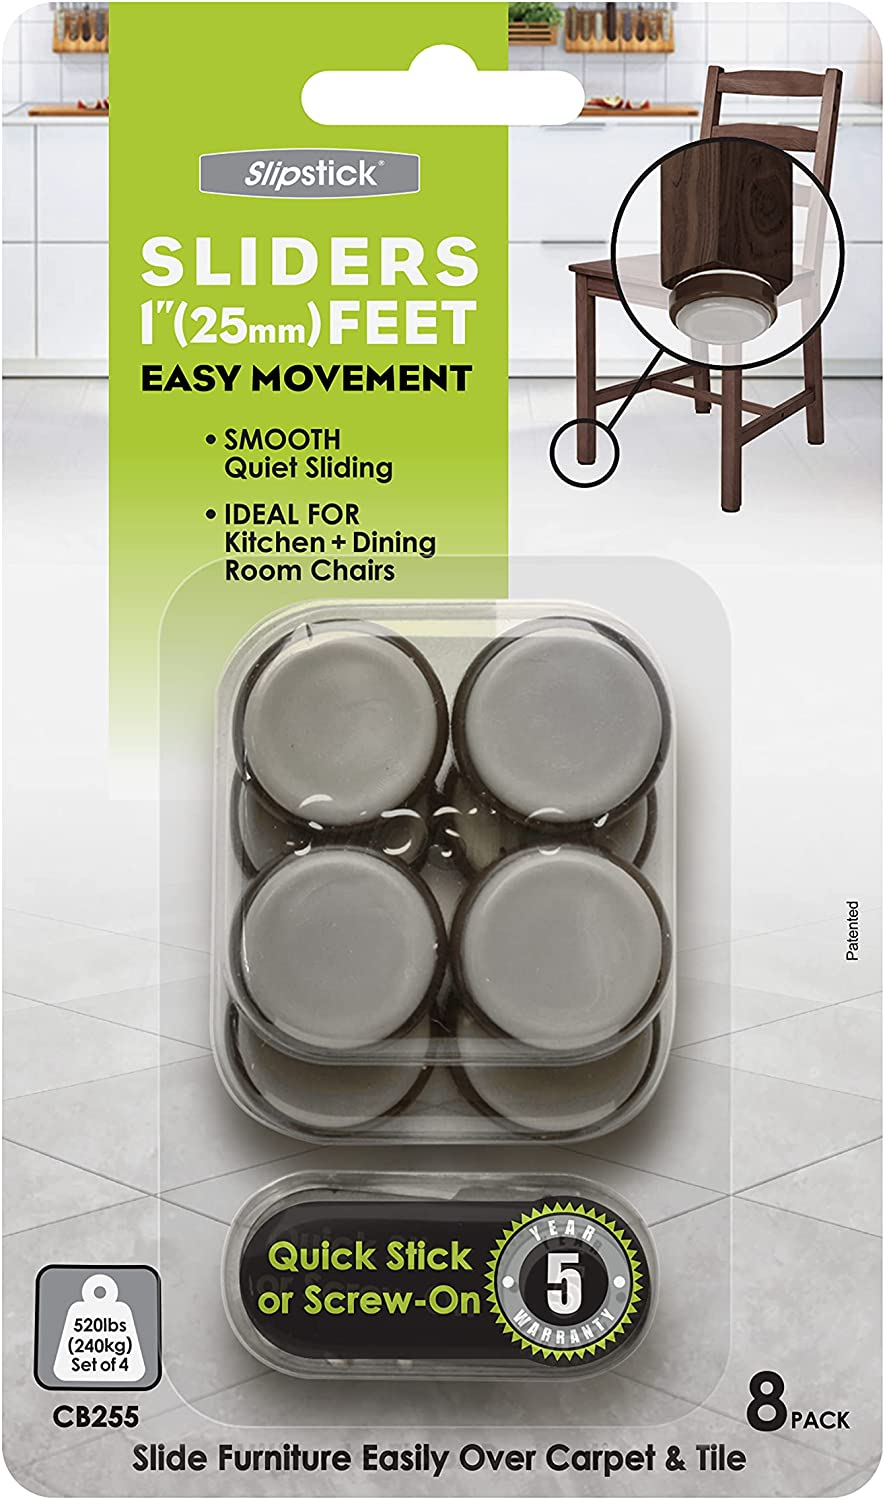 Slipstick Chocolate CB255 1 Over item handling Inch Glides Protector Fu Chair Floor We OFFer at cheap prices